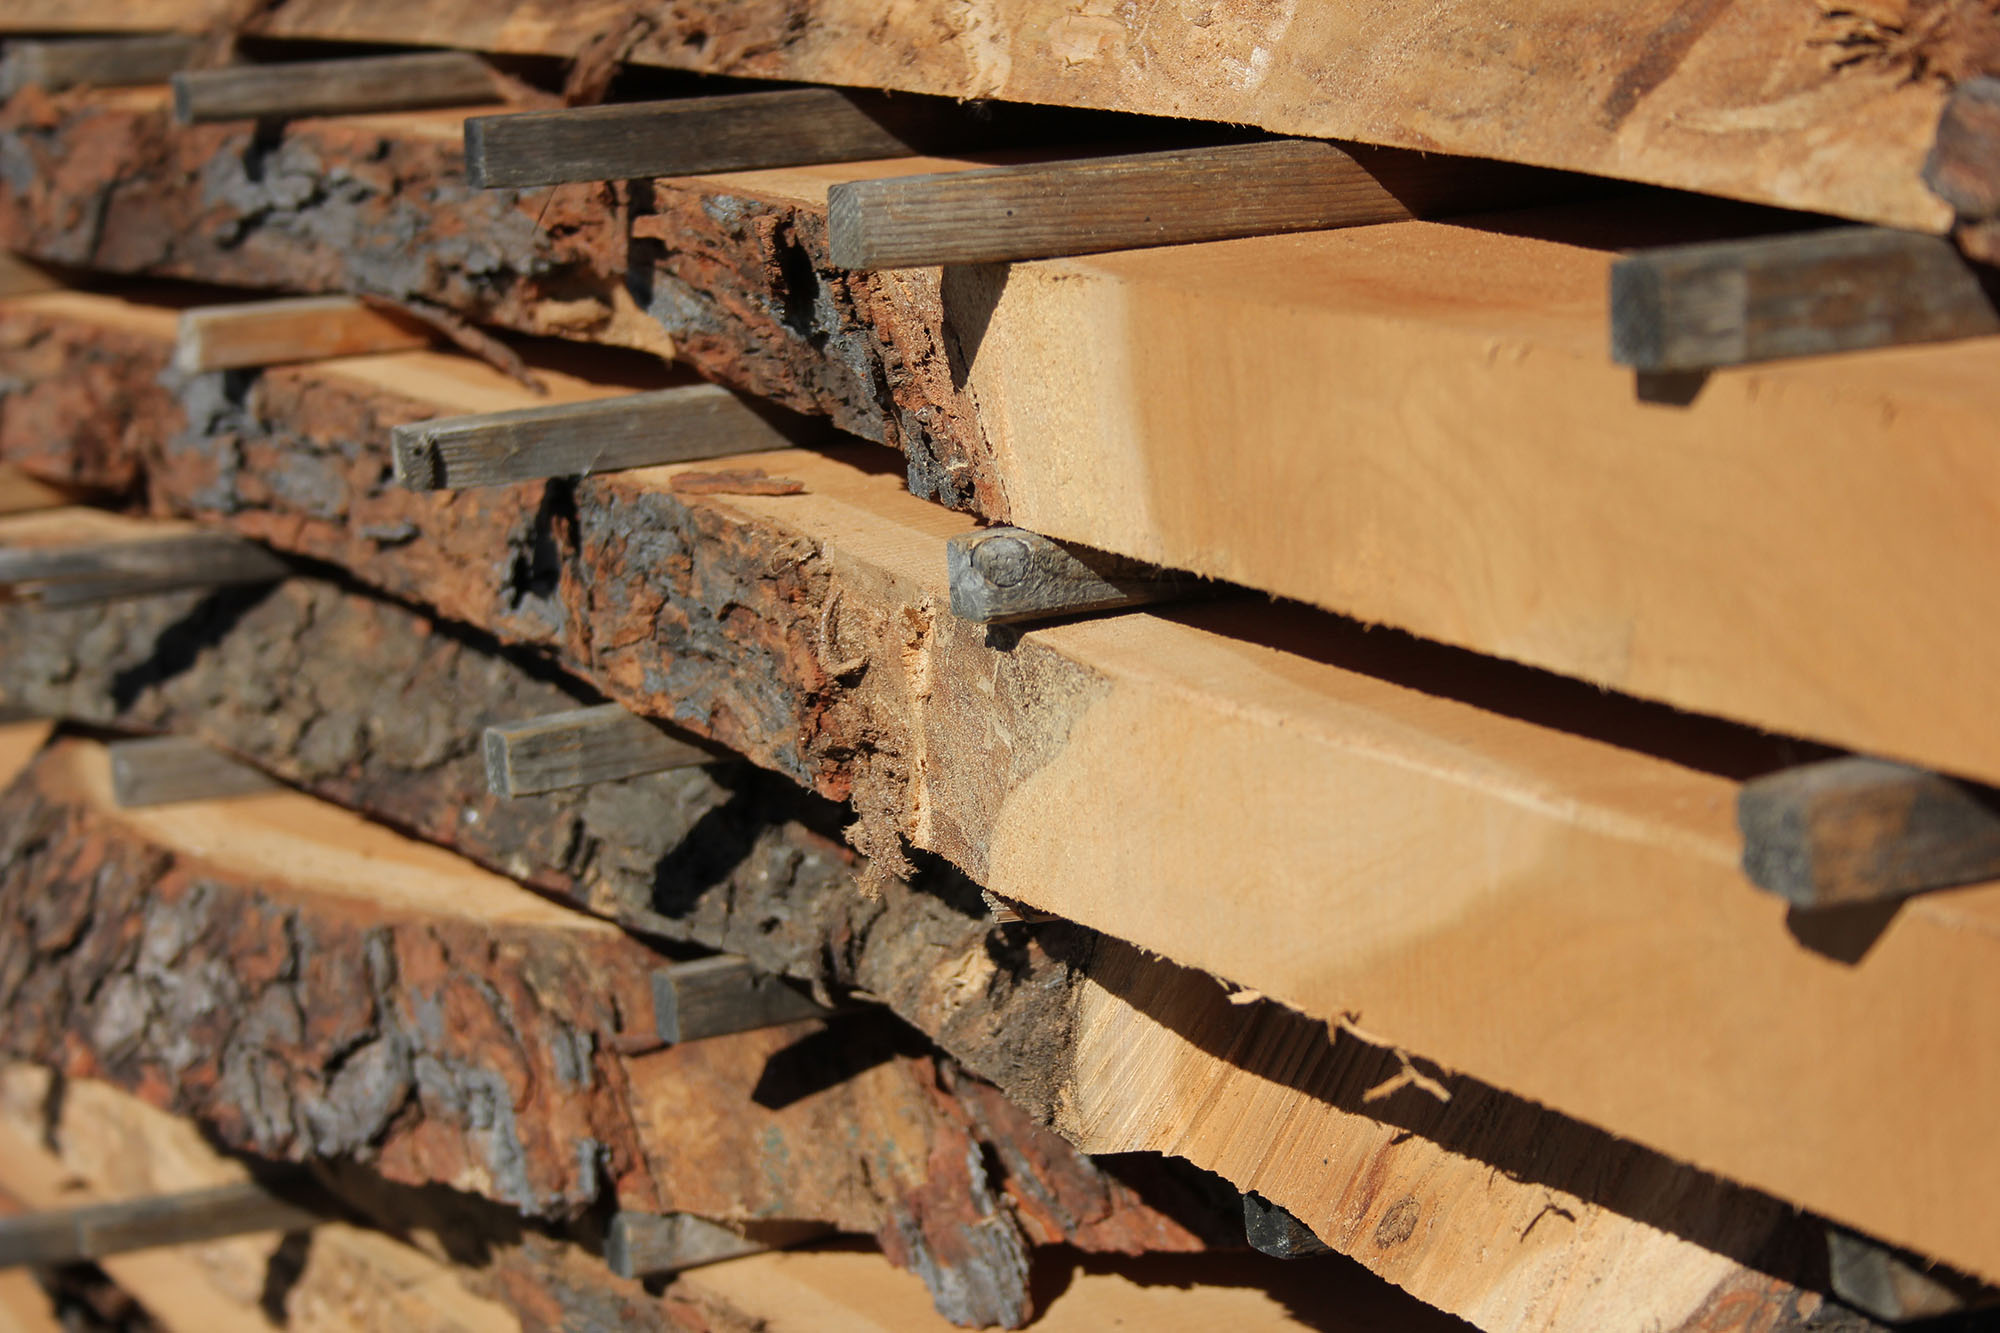 Sawmill & Kiln Drying - Horigan Urban Forest Products